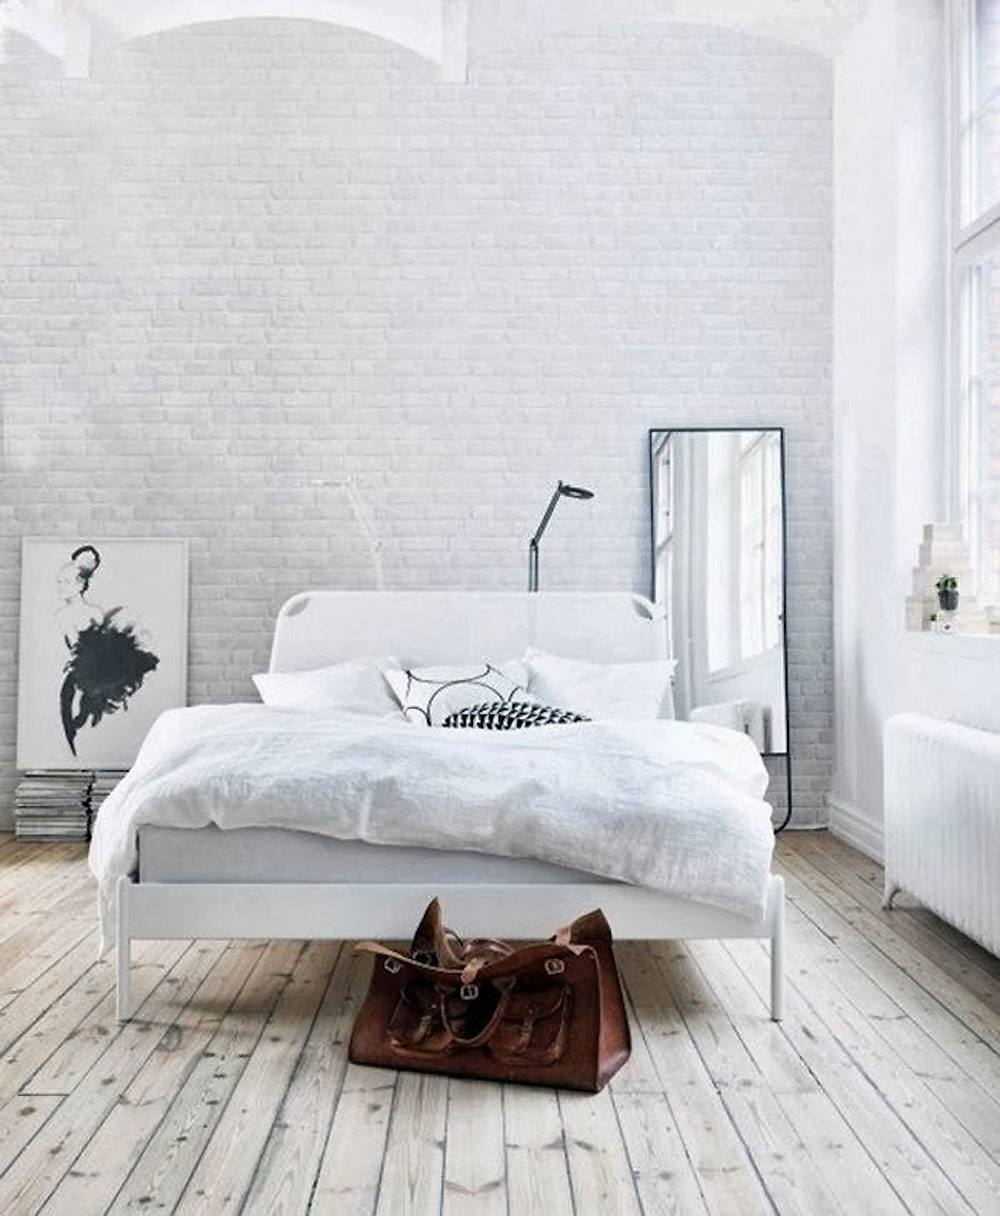 40 minimalist bedroom ideas less is more homelovr for Bed minimalist design